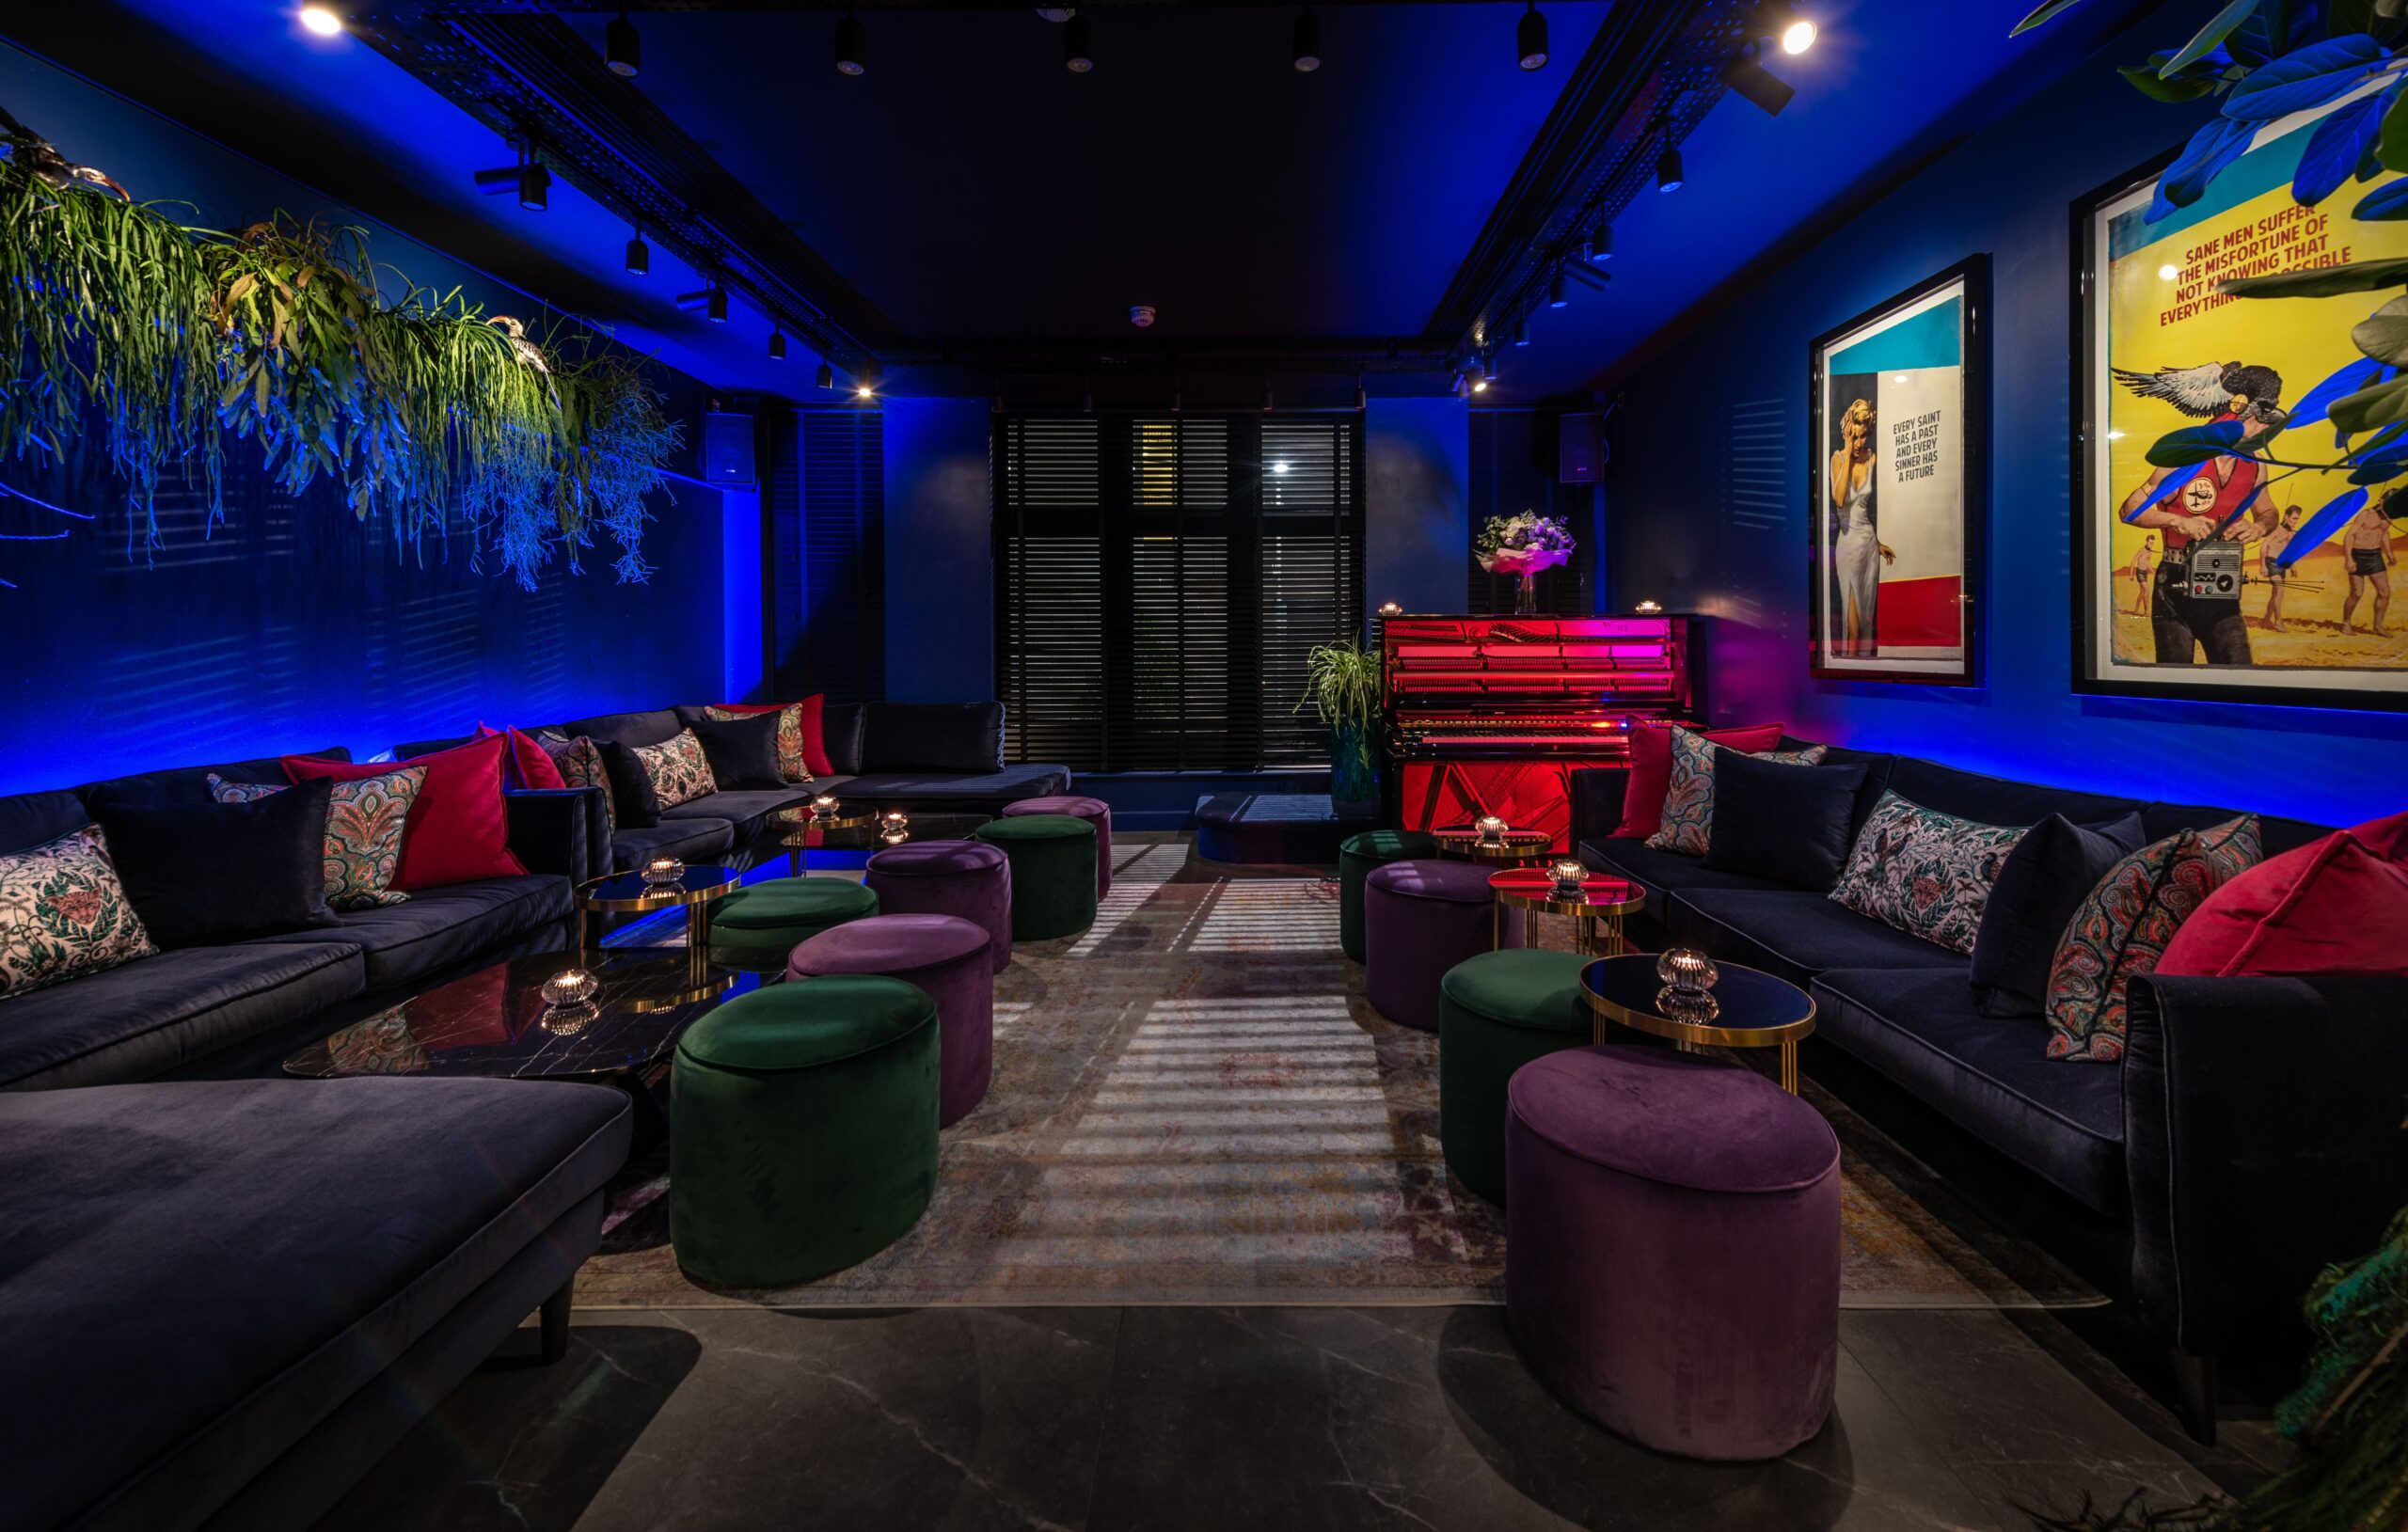 Boutique charm and eccentric interiors - you'll love the cool luxe Hux Hotel on London's Kensington High Street